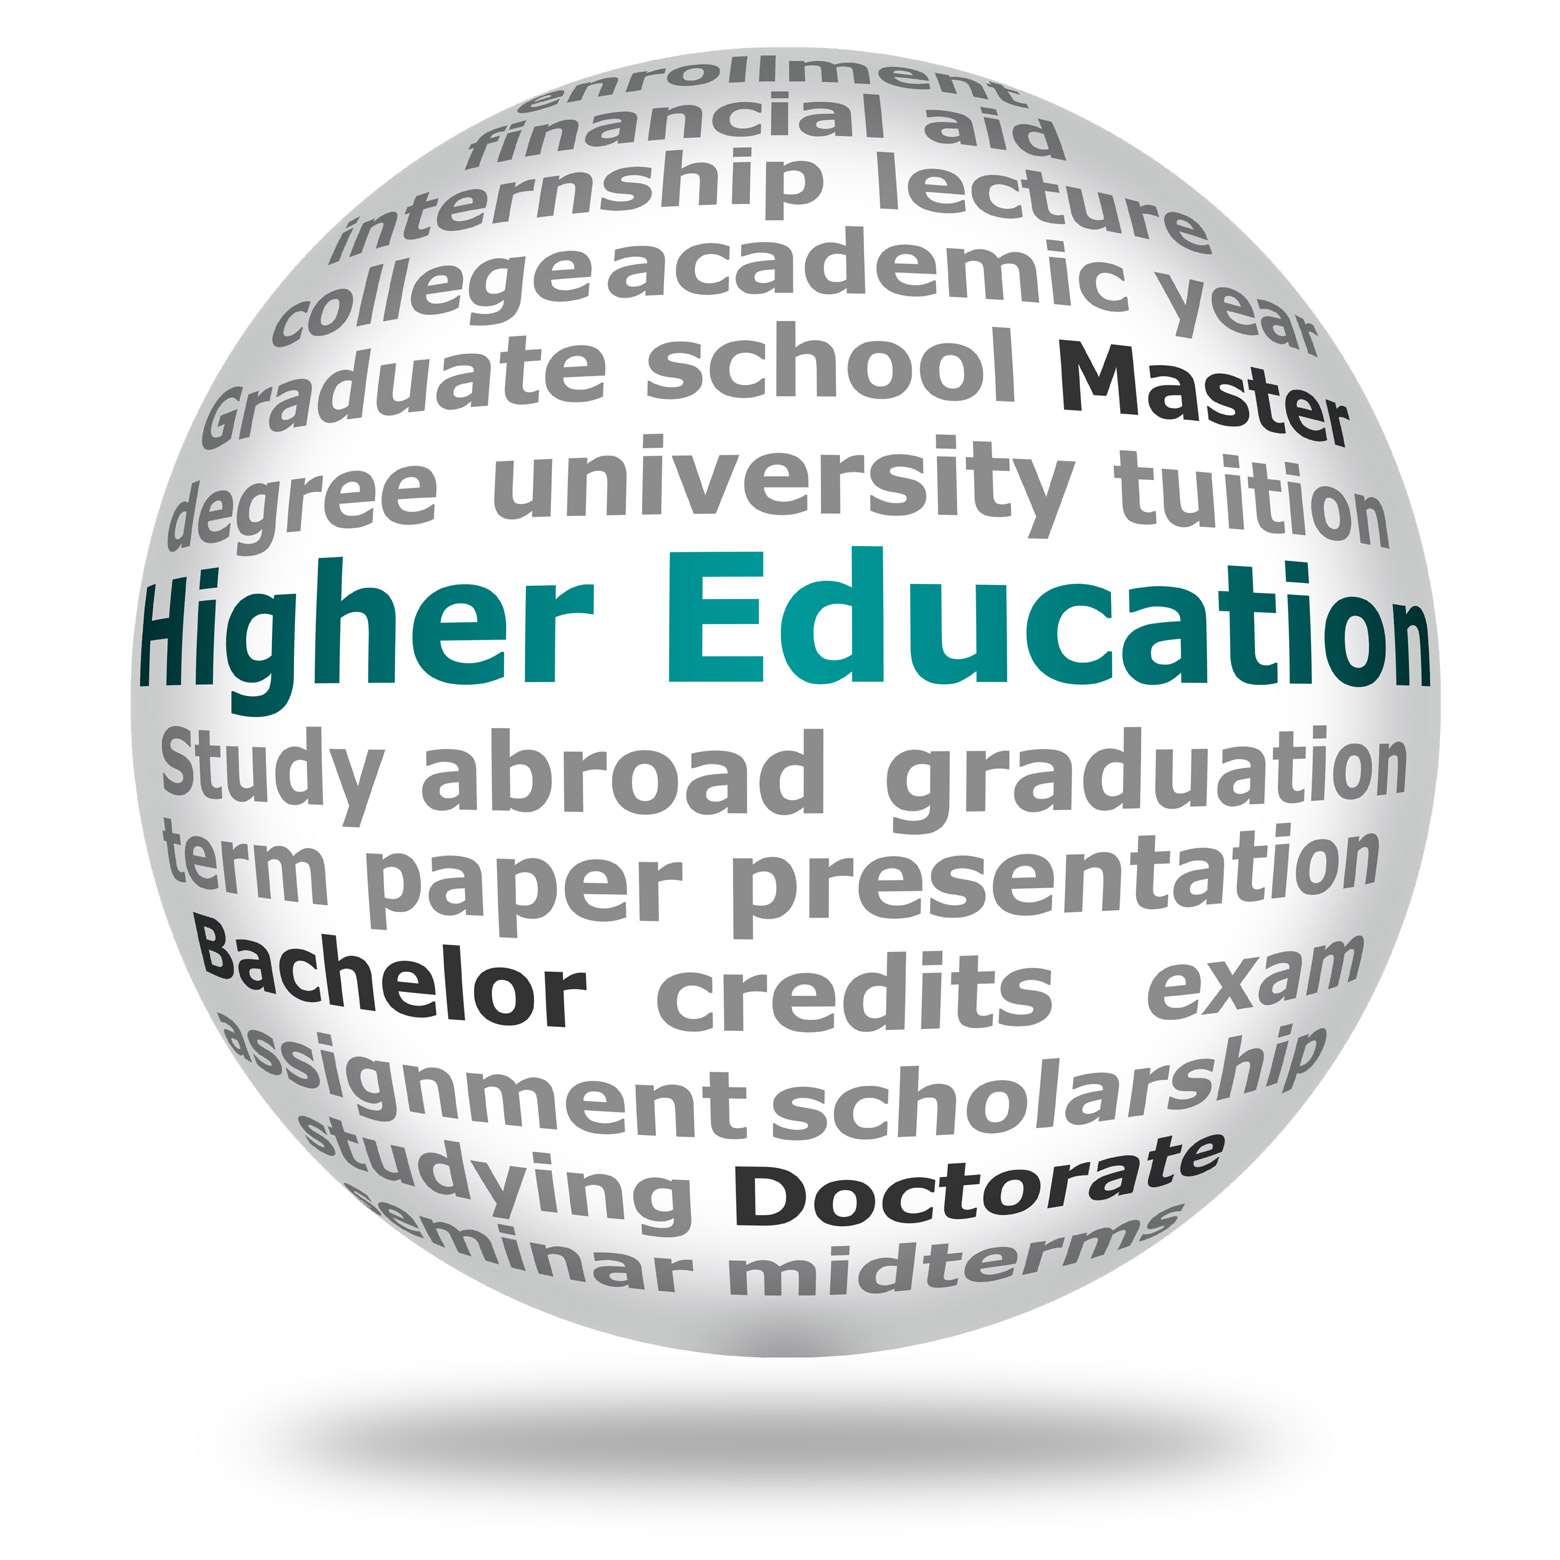 Classification essay on college education